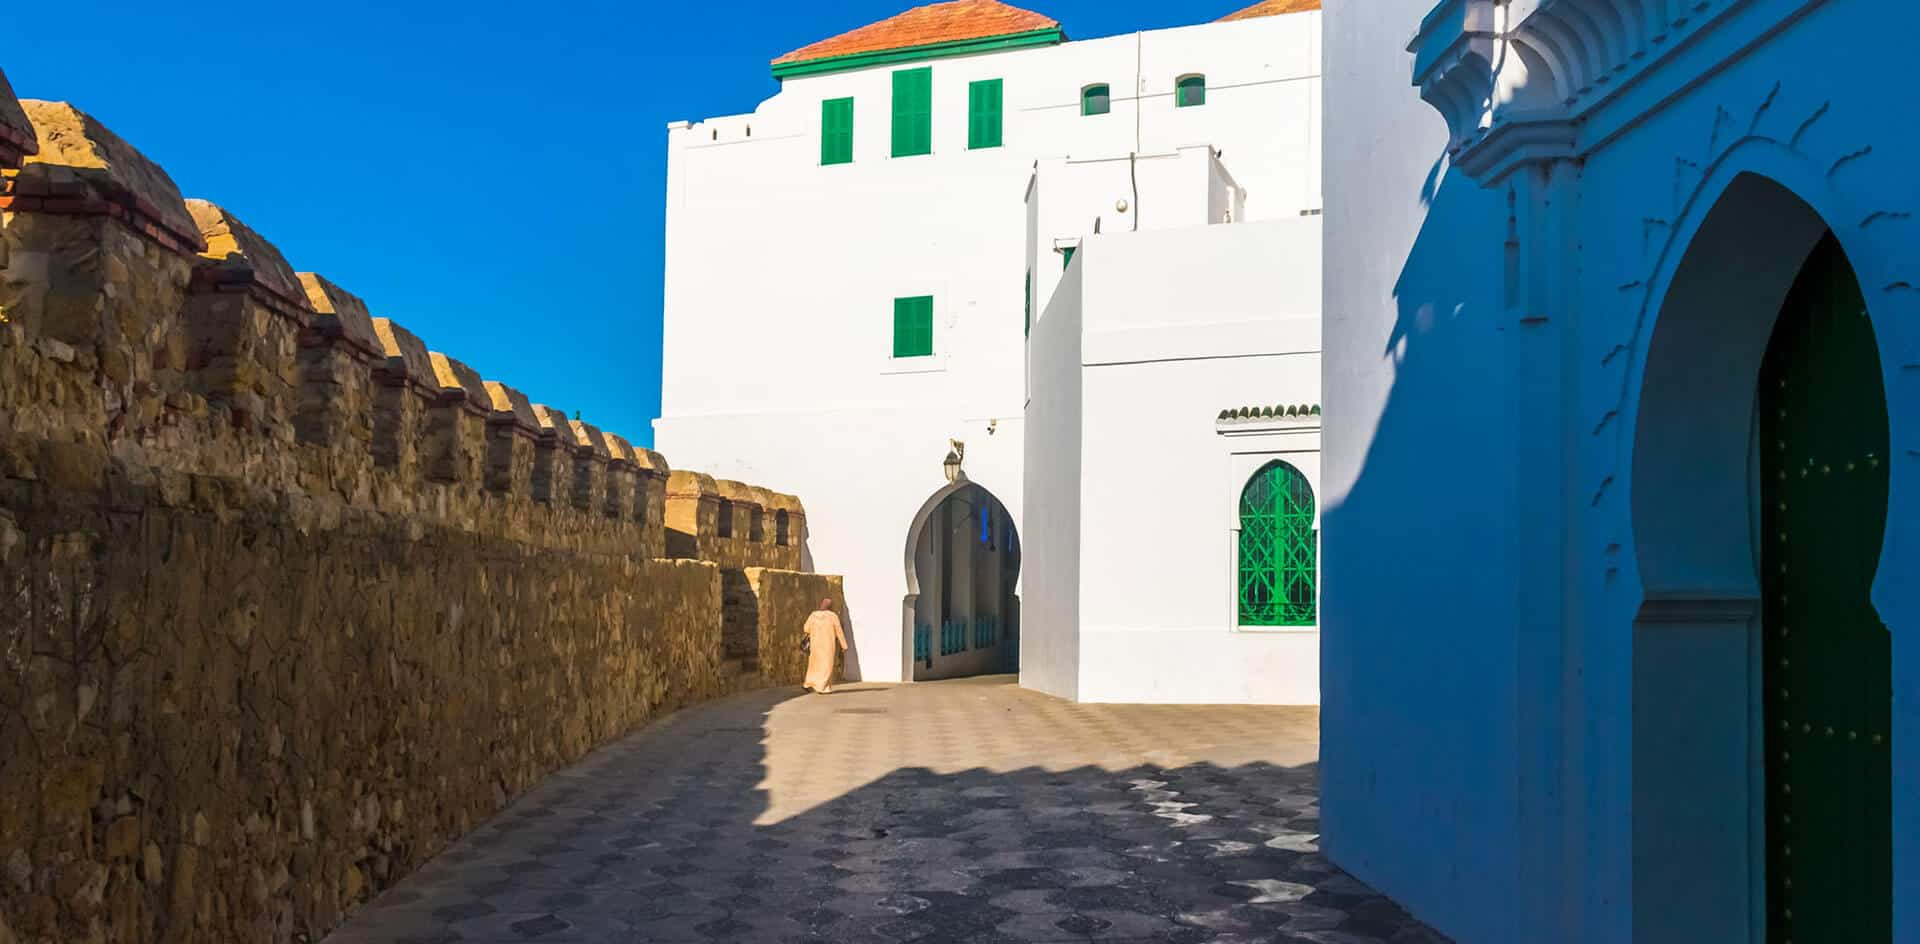 asilah-interior-medina-norte-marruecos